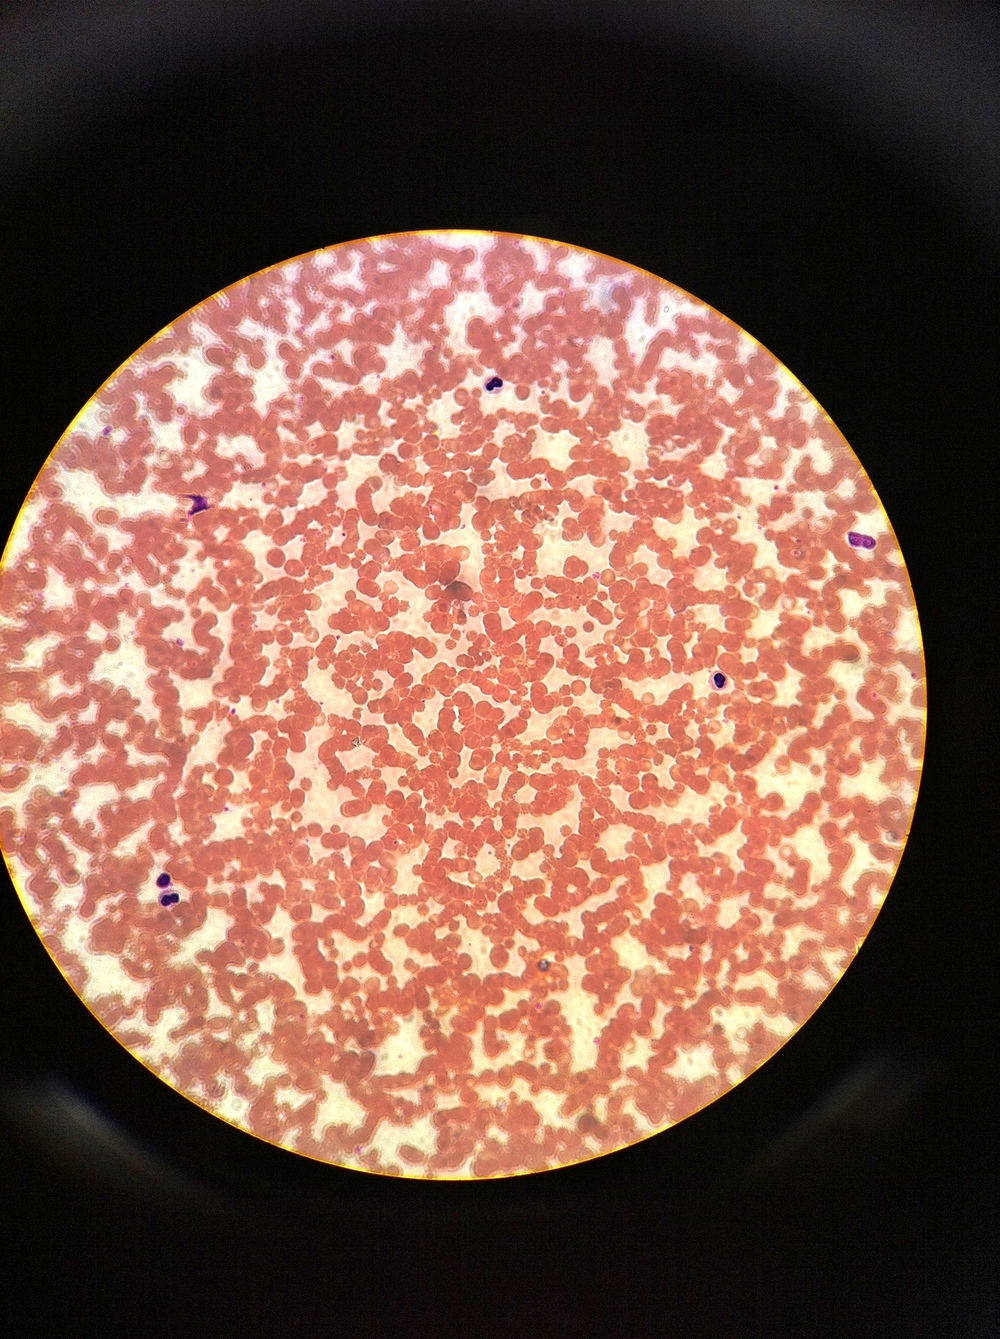 Blood (Wrights stain) Total Mag: 400X